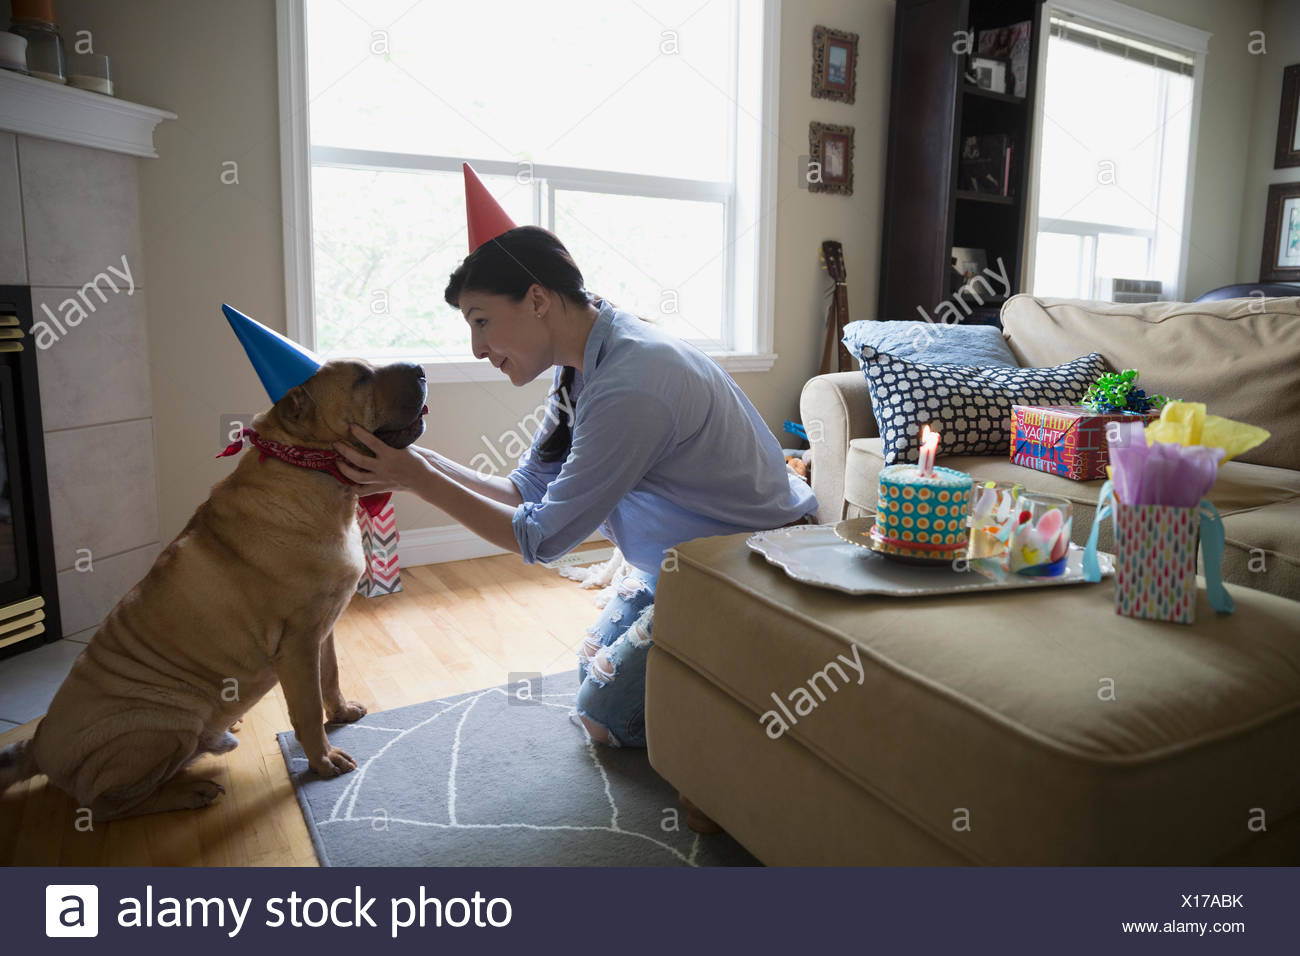 Woman and dog celebrating birthday face to face - Stock Image